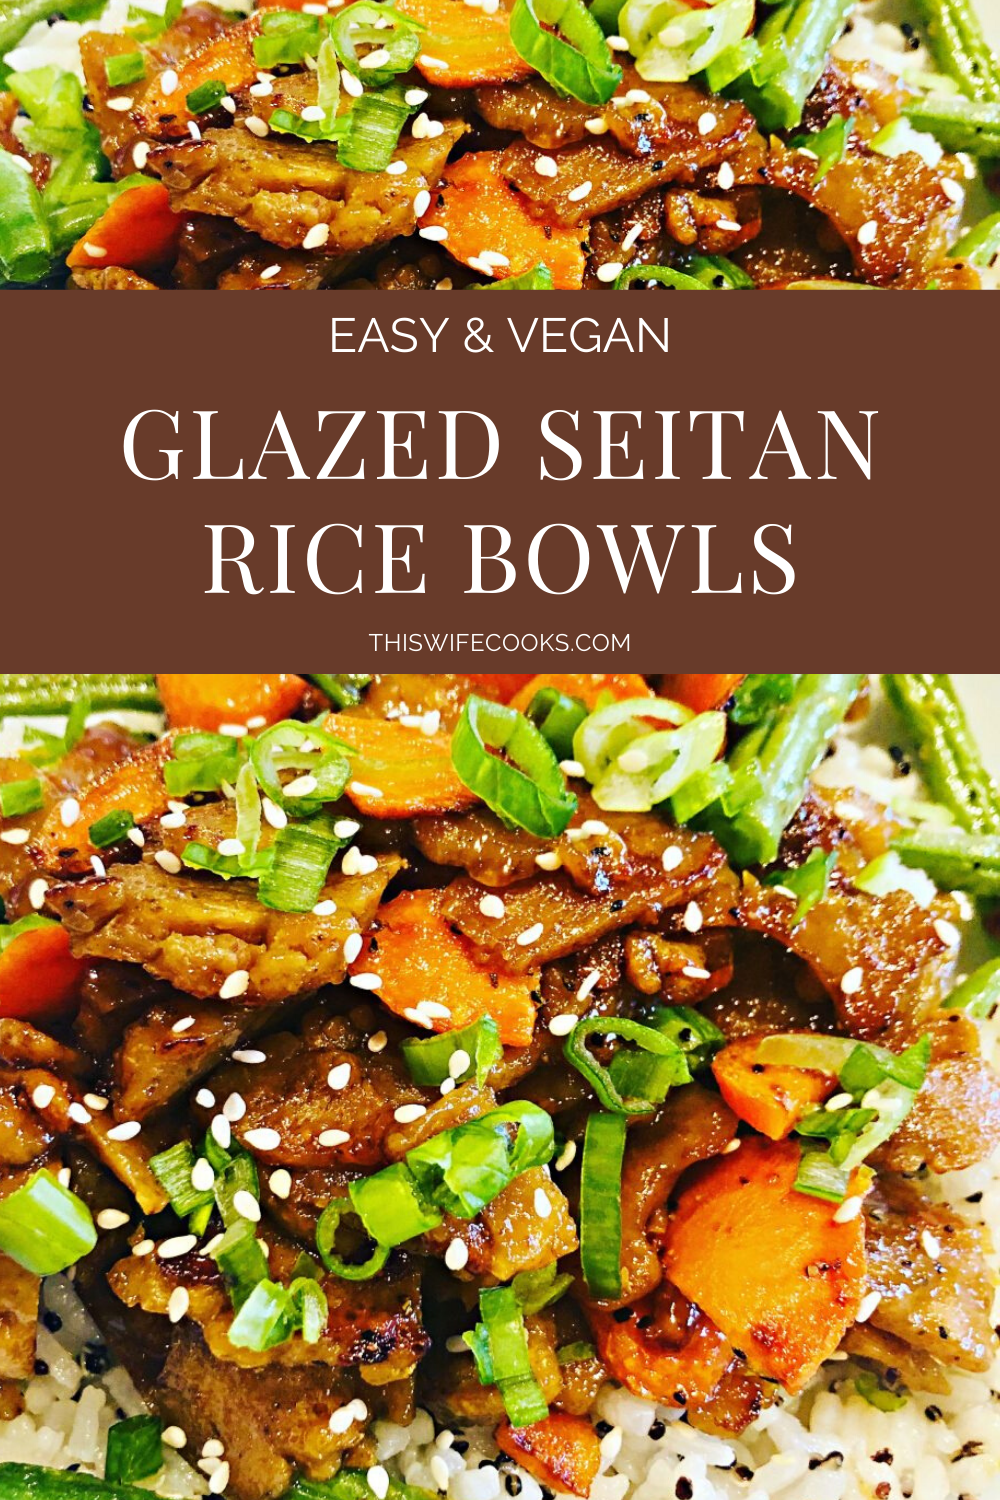 Apricot Glazed Seitan Rice Bowls - An easy and flavorful plant-based dinner that you can have on the table in about 30 minutes!